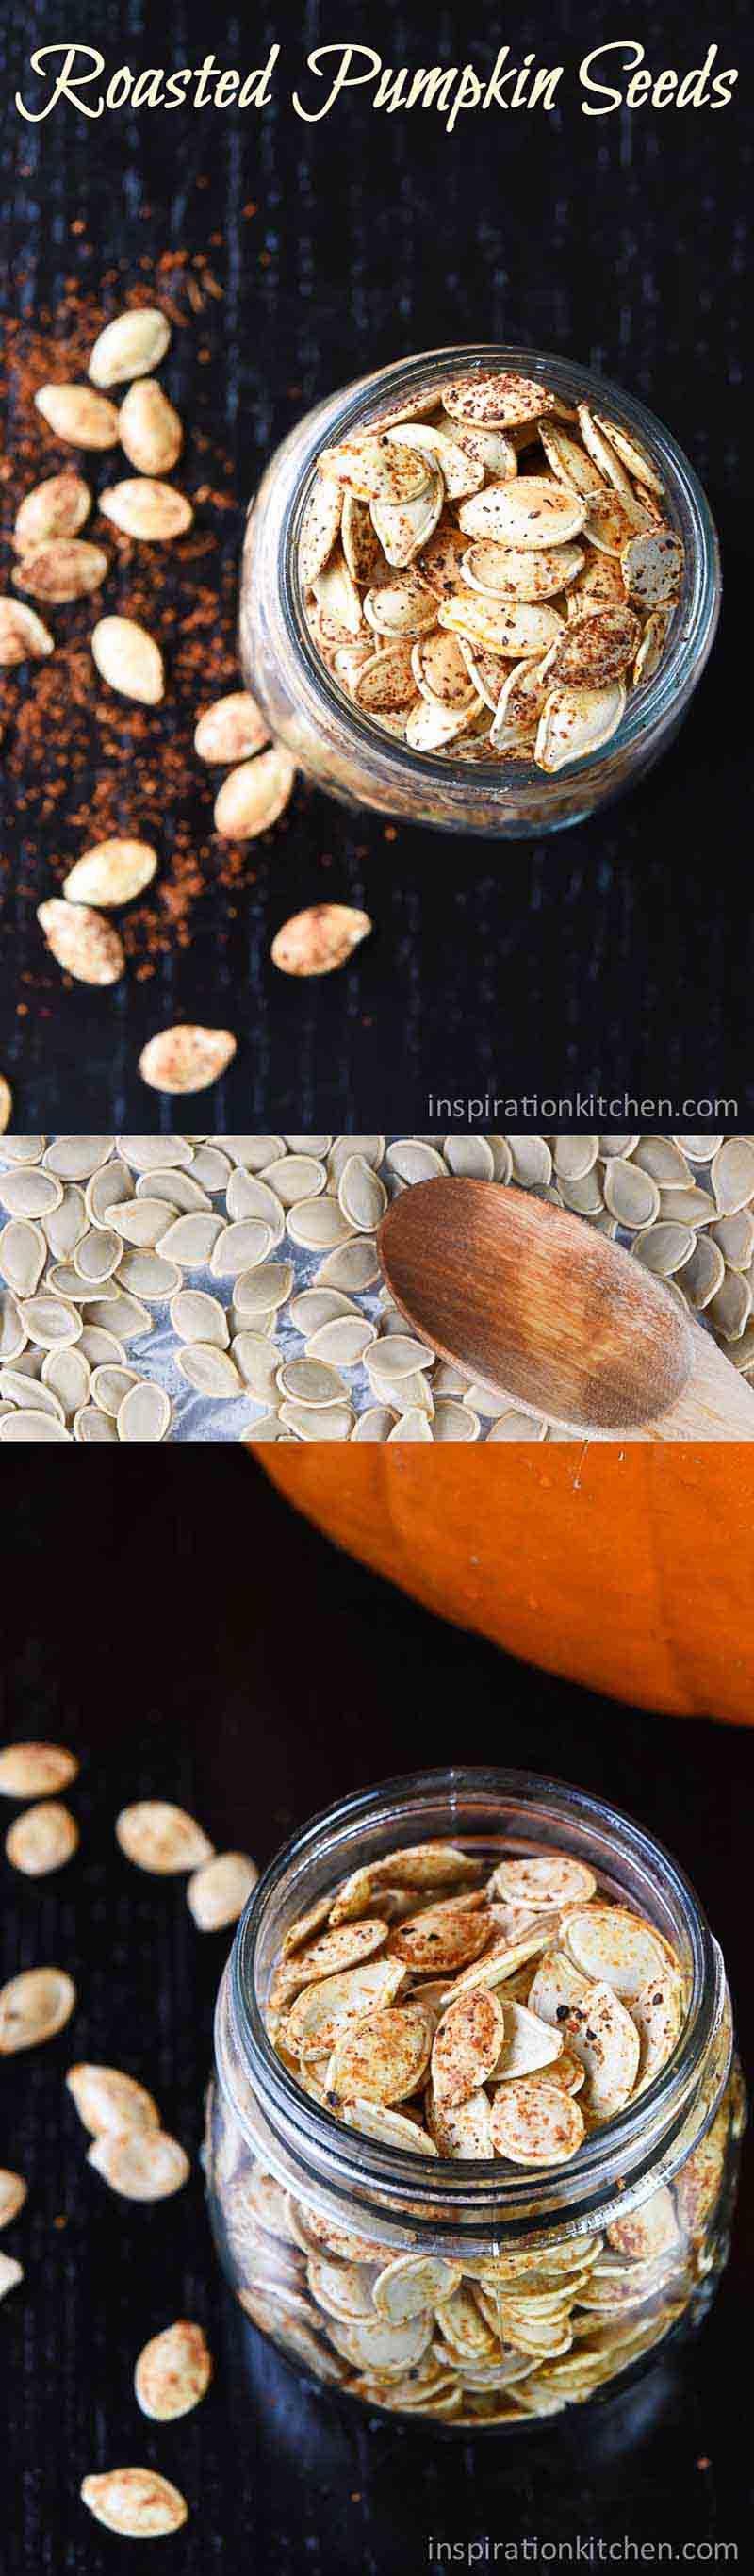 Roasted Pumpkin Seeds Collage | Inspiration Kitchen